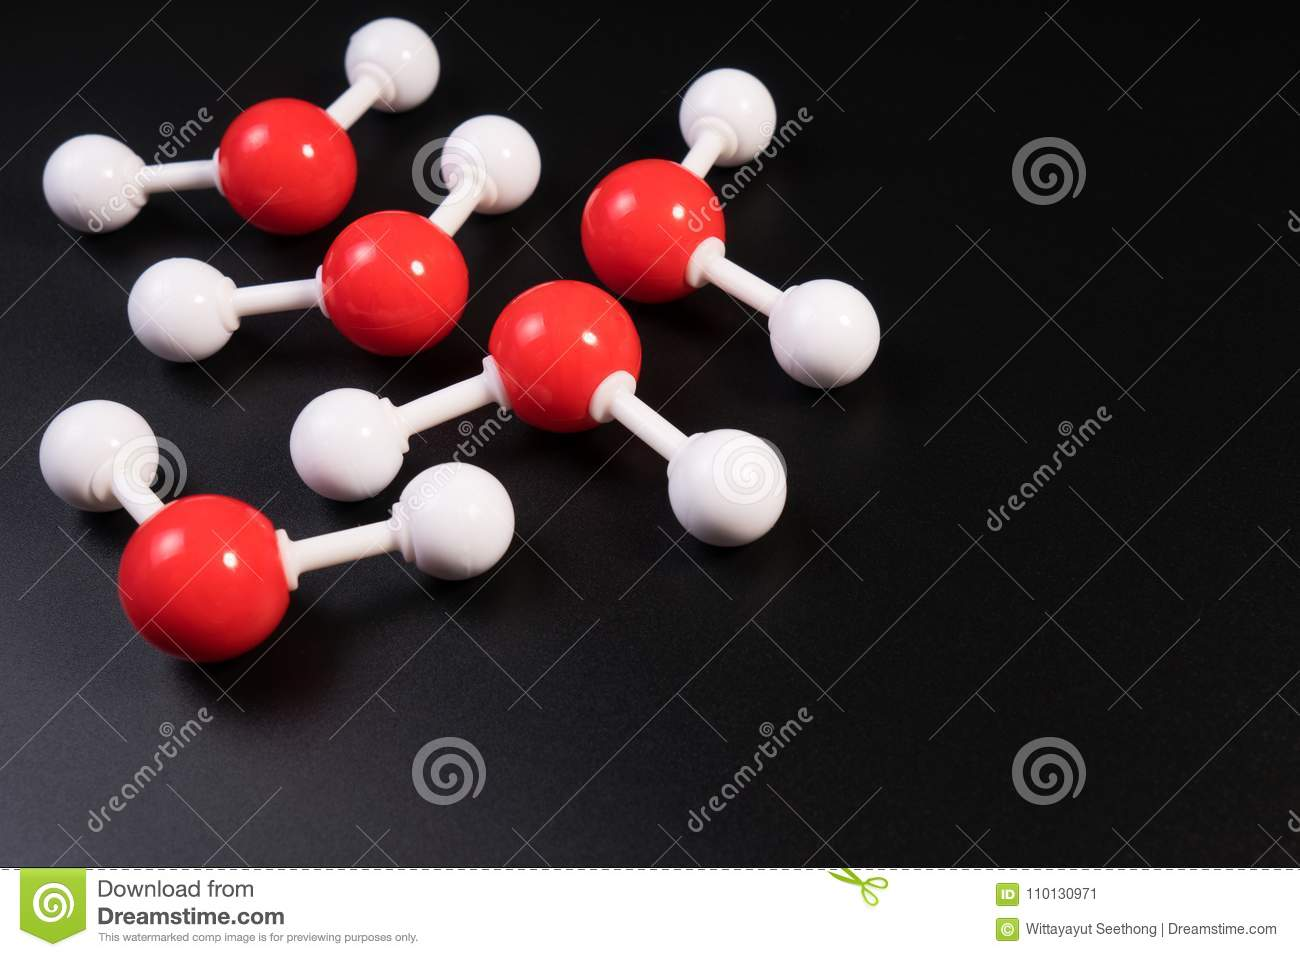 Chemistry model atom of molecule water scientific elements. Integrated particles hydrogen and oxygen atom on black background.